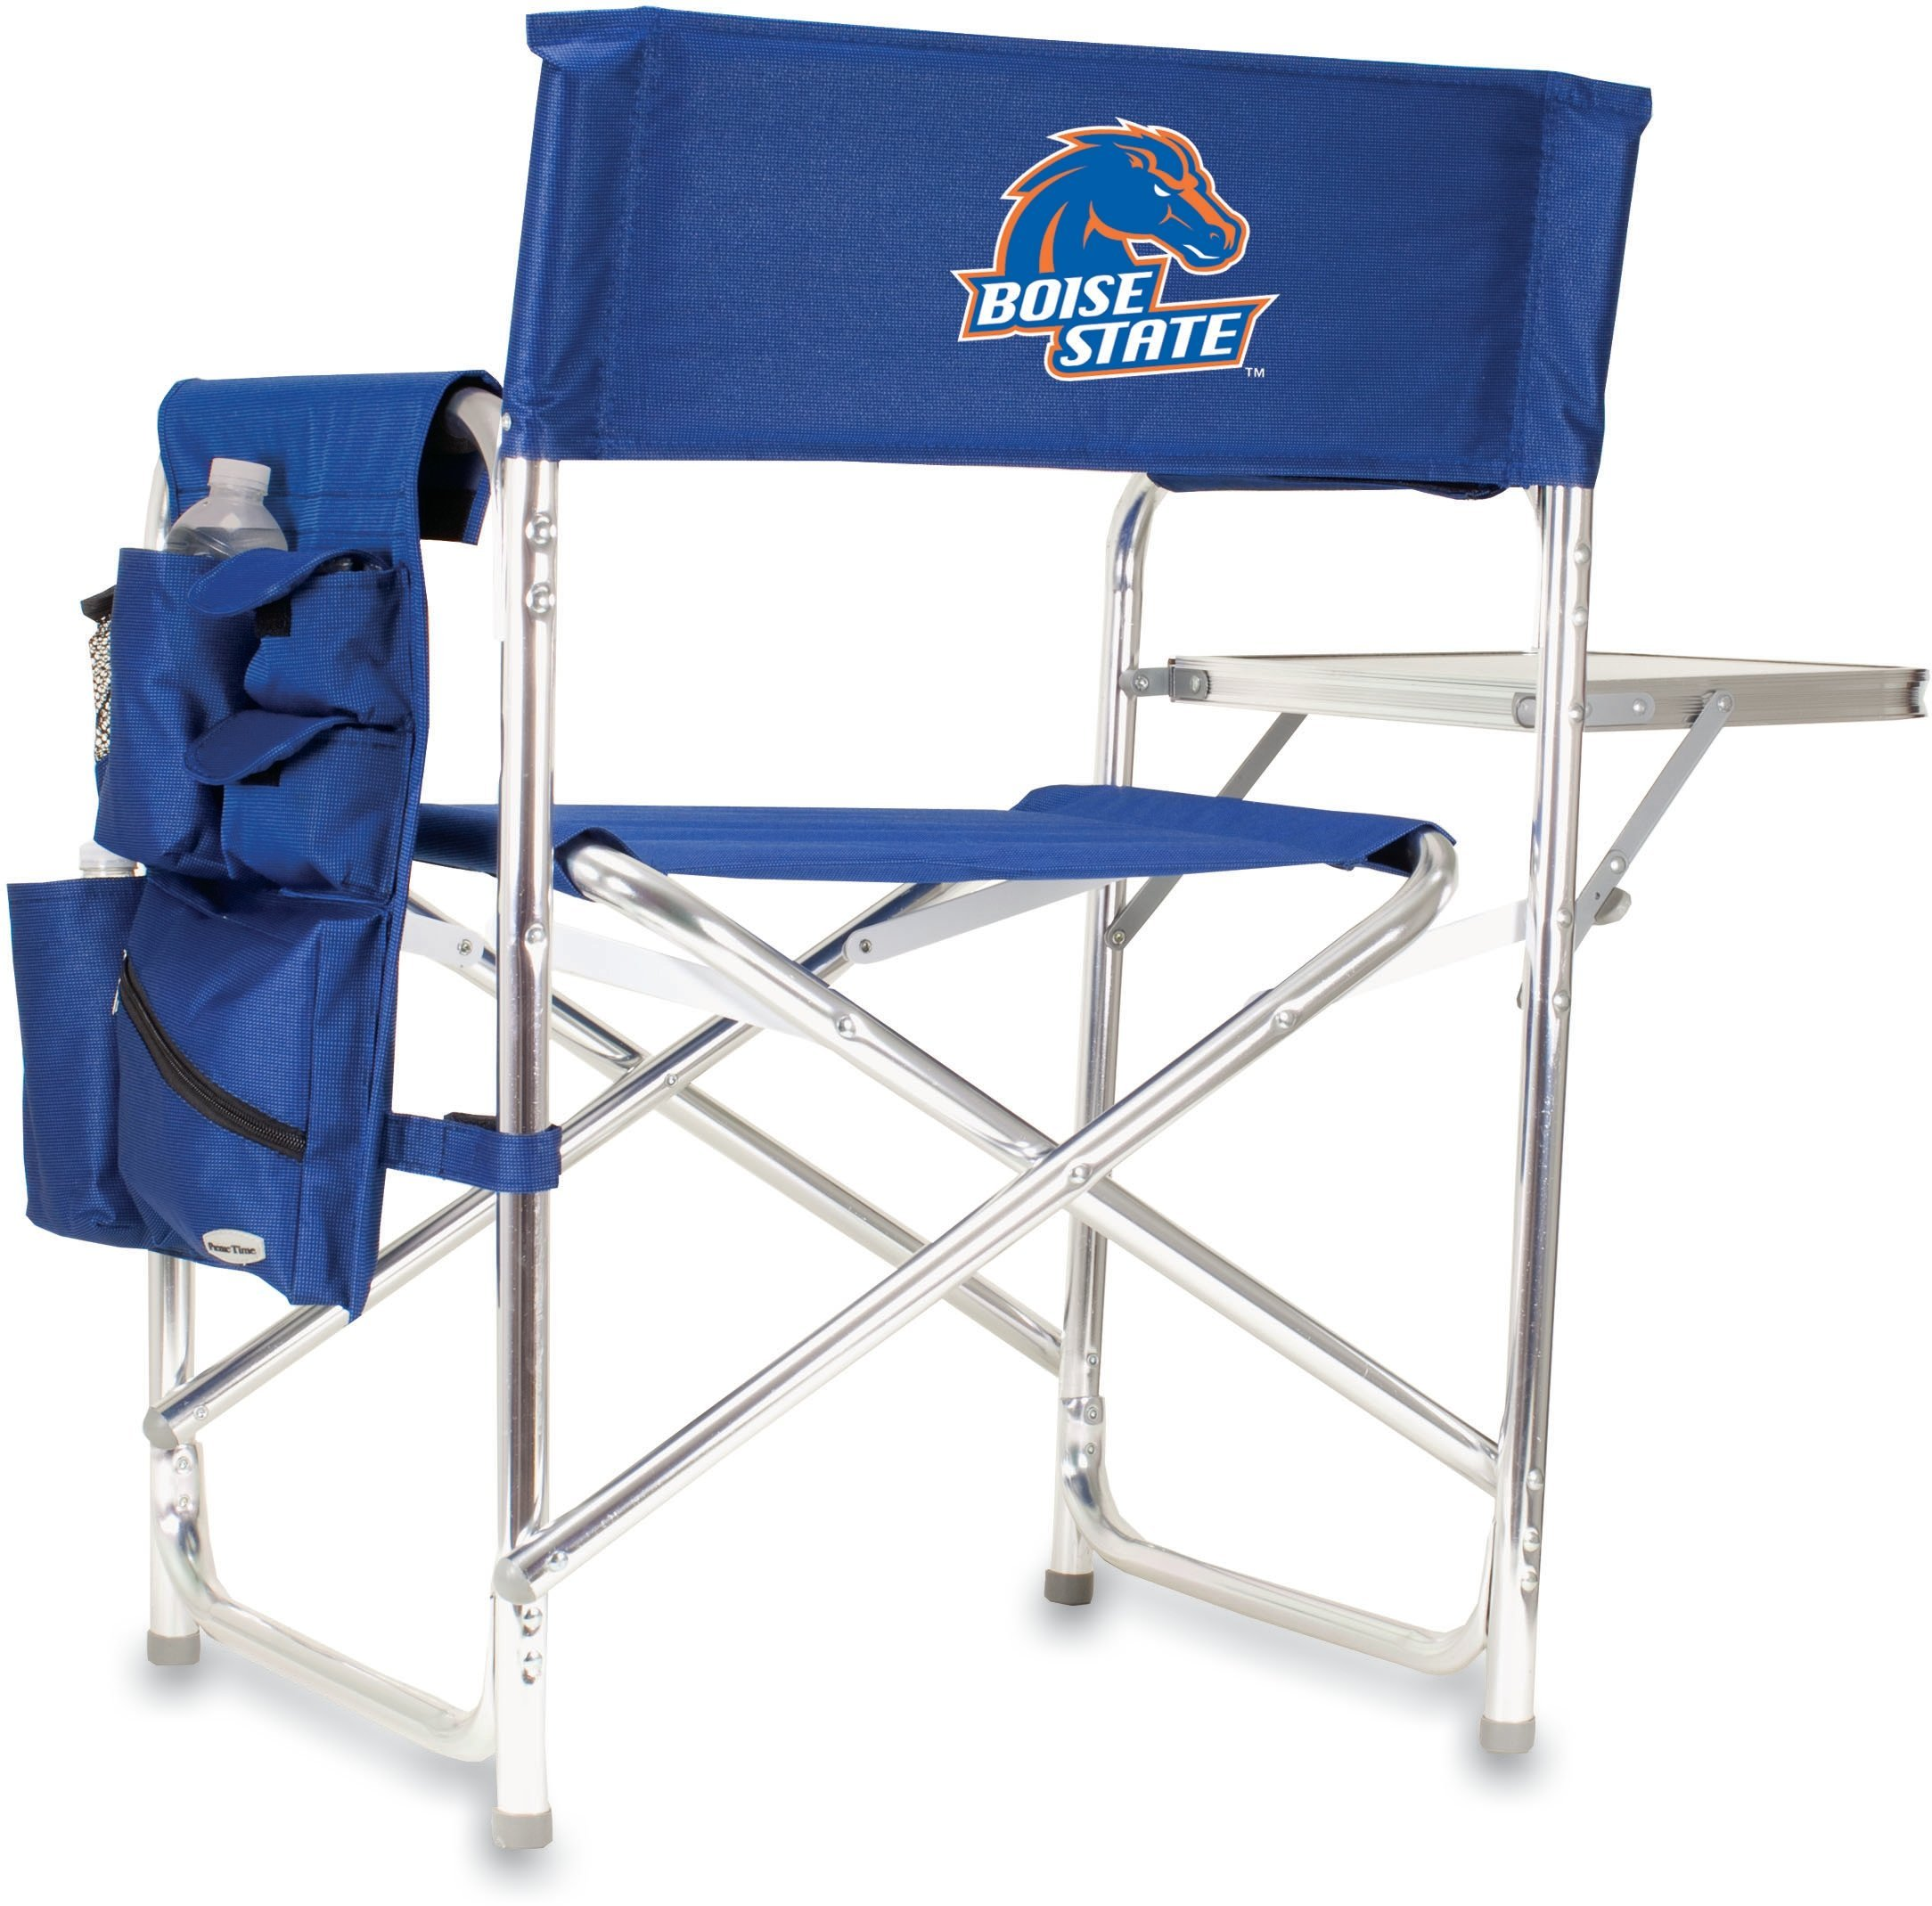 NCAA Boise State Broncos Sports Folding Chair